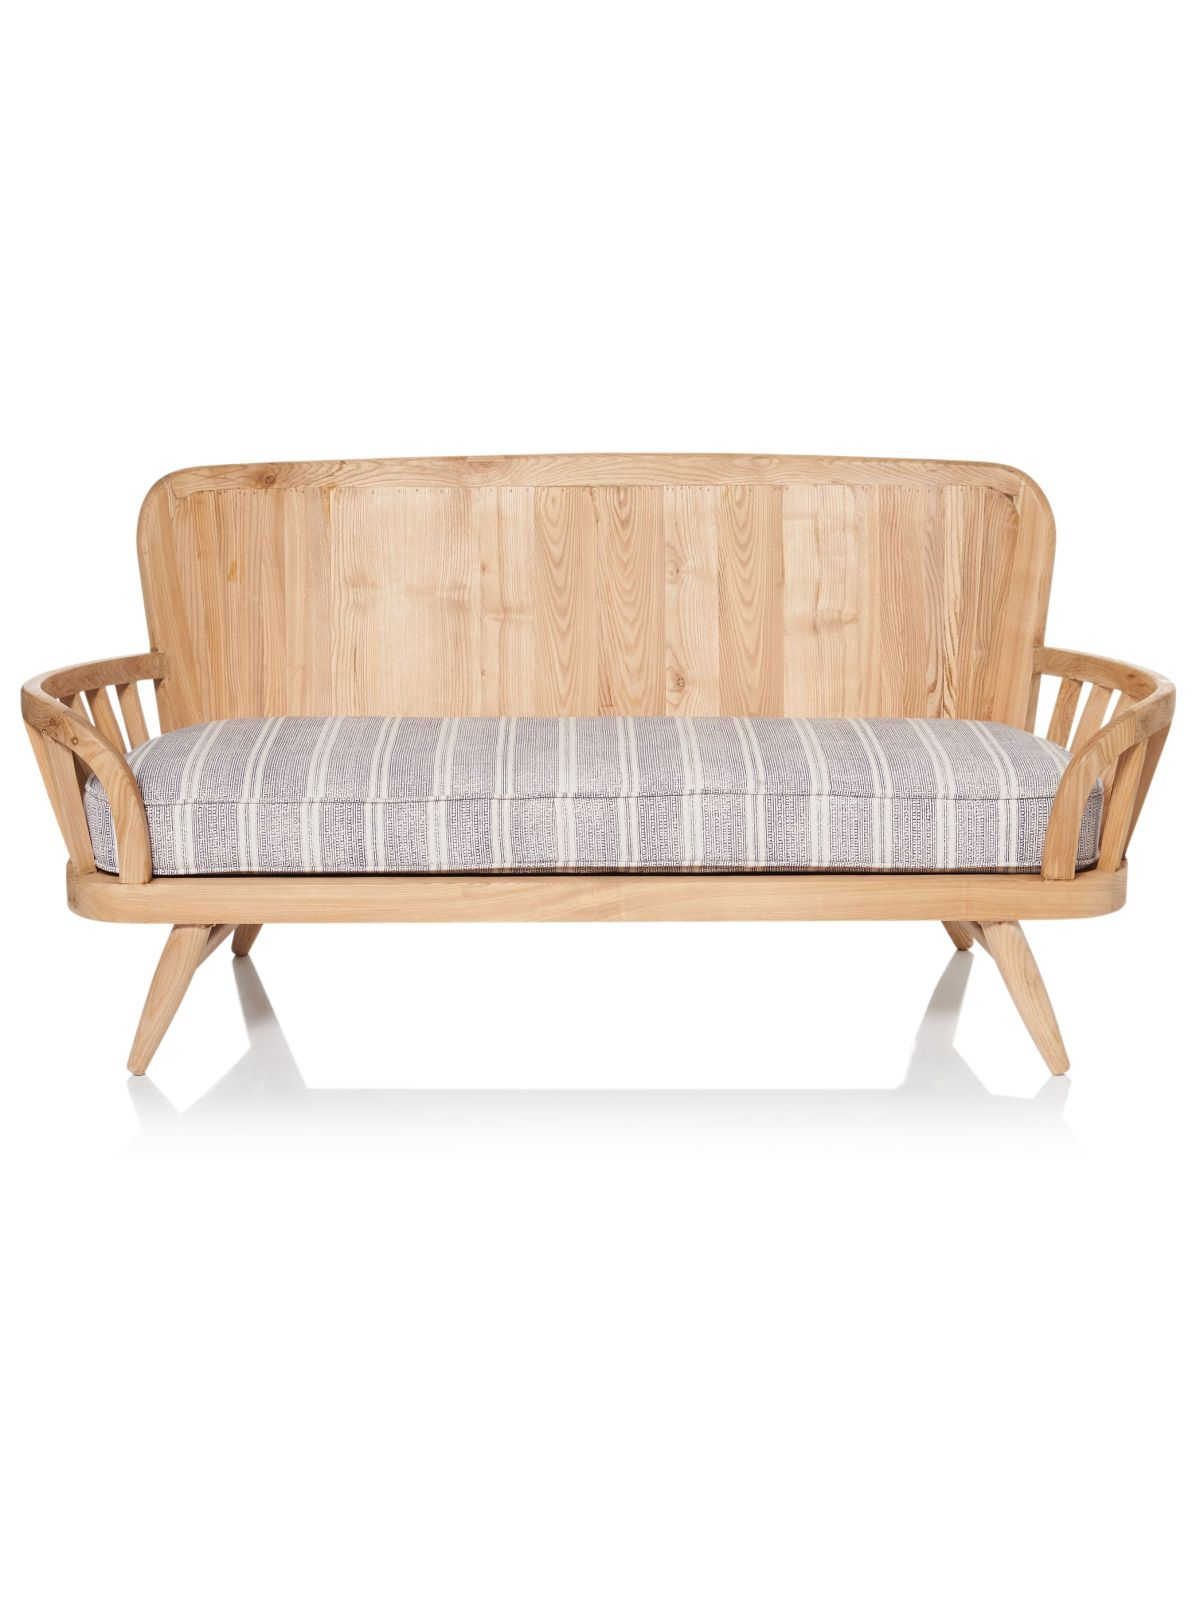 Sofa Landhausstil Grün Sofa Skandinavischer Landhausstil Massives Holz Shop Landhaus Look